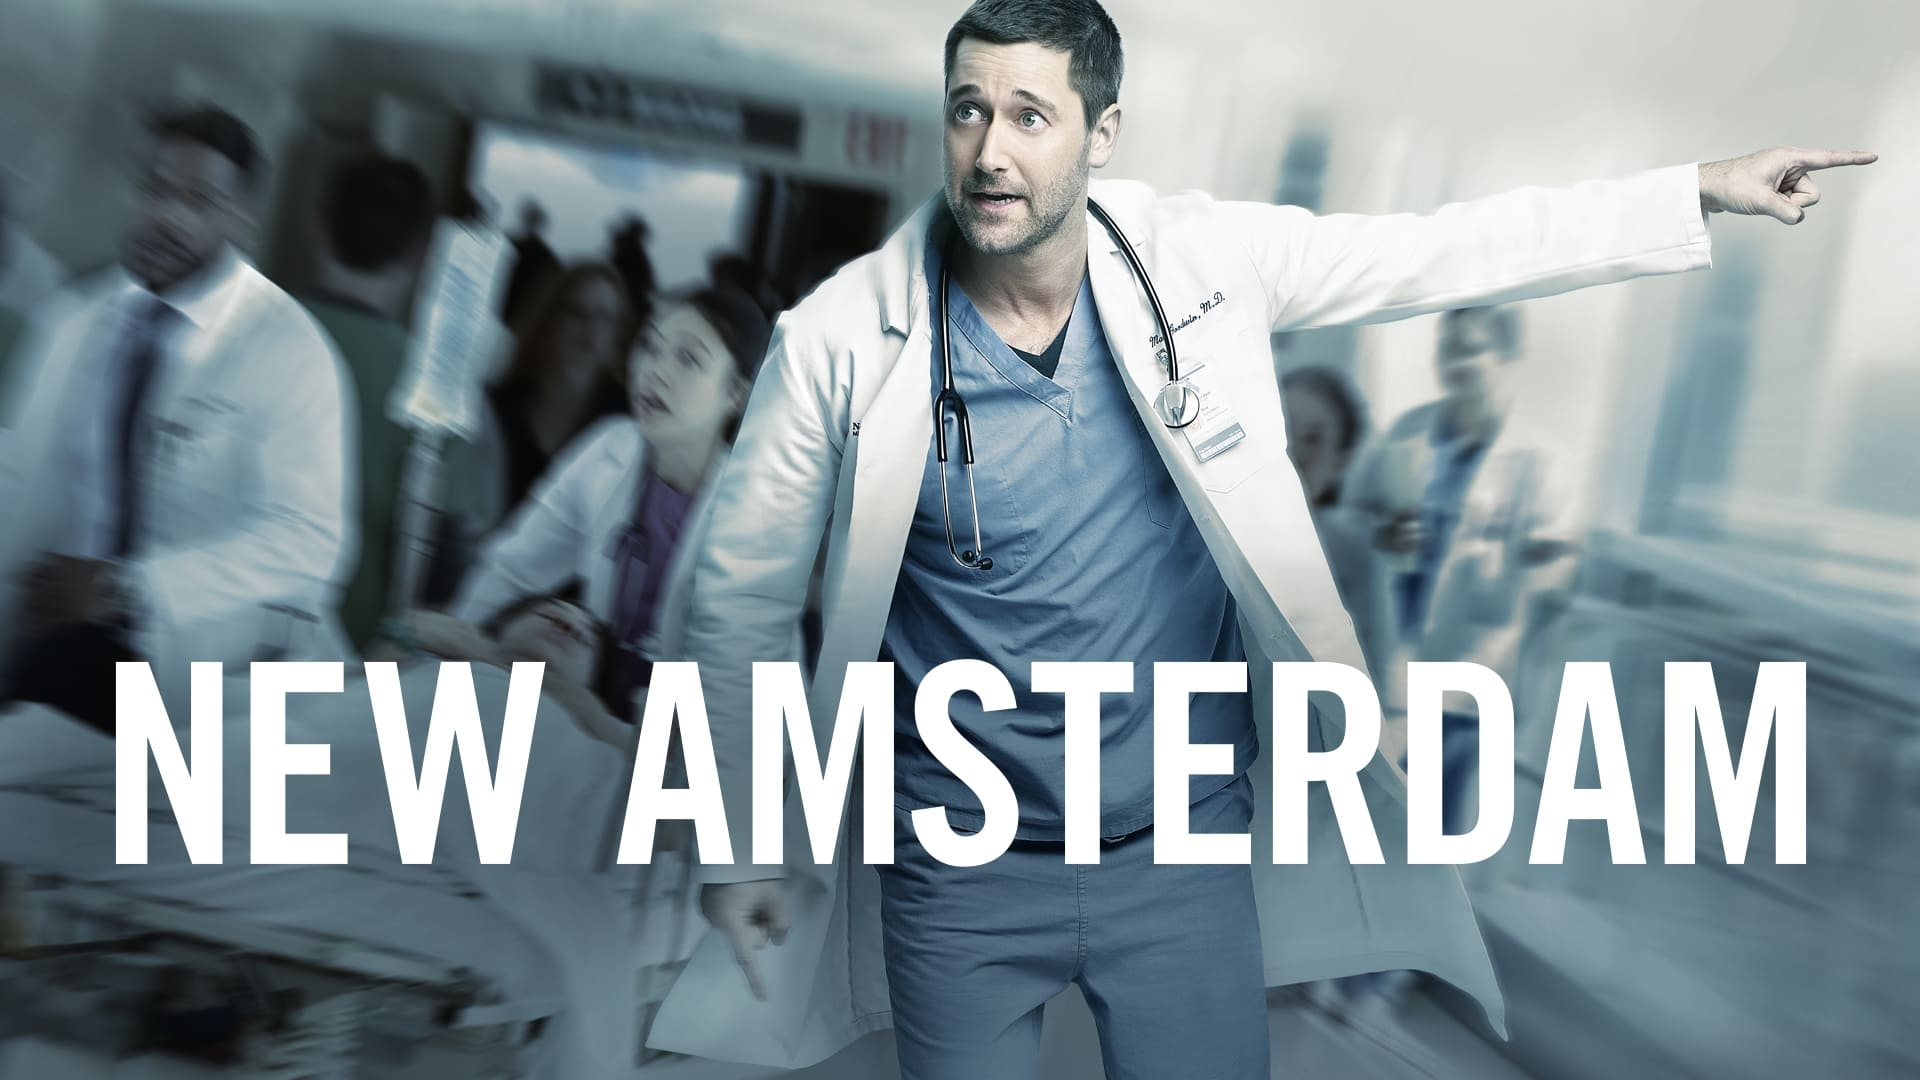 Season three of New Amsterdam (2018) has been given a release date